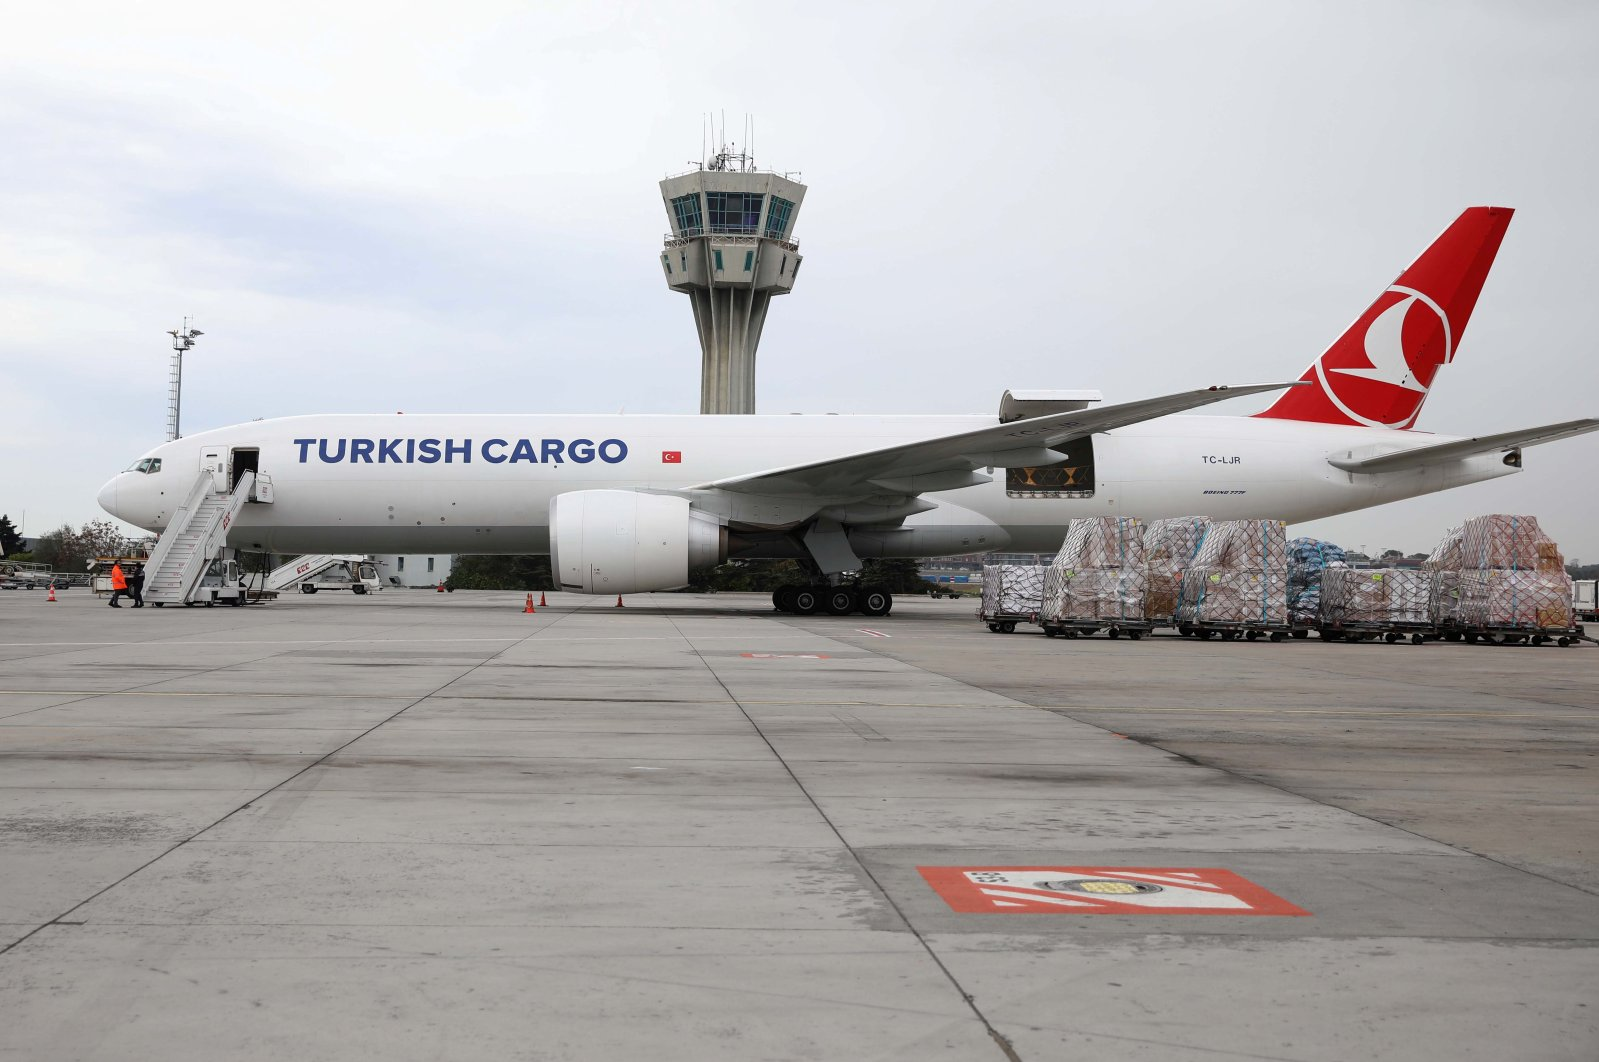 A Turkish Cargo plane carrying China'sSinovac COVID-19 vaccines in active temperature control containers is seen on the tarmac of Atatürk Airport before departing to Brazil, in Istanbul, Turkey, Nov. 18, 2020. (Reuters Photo)